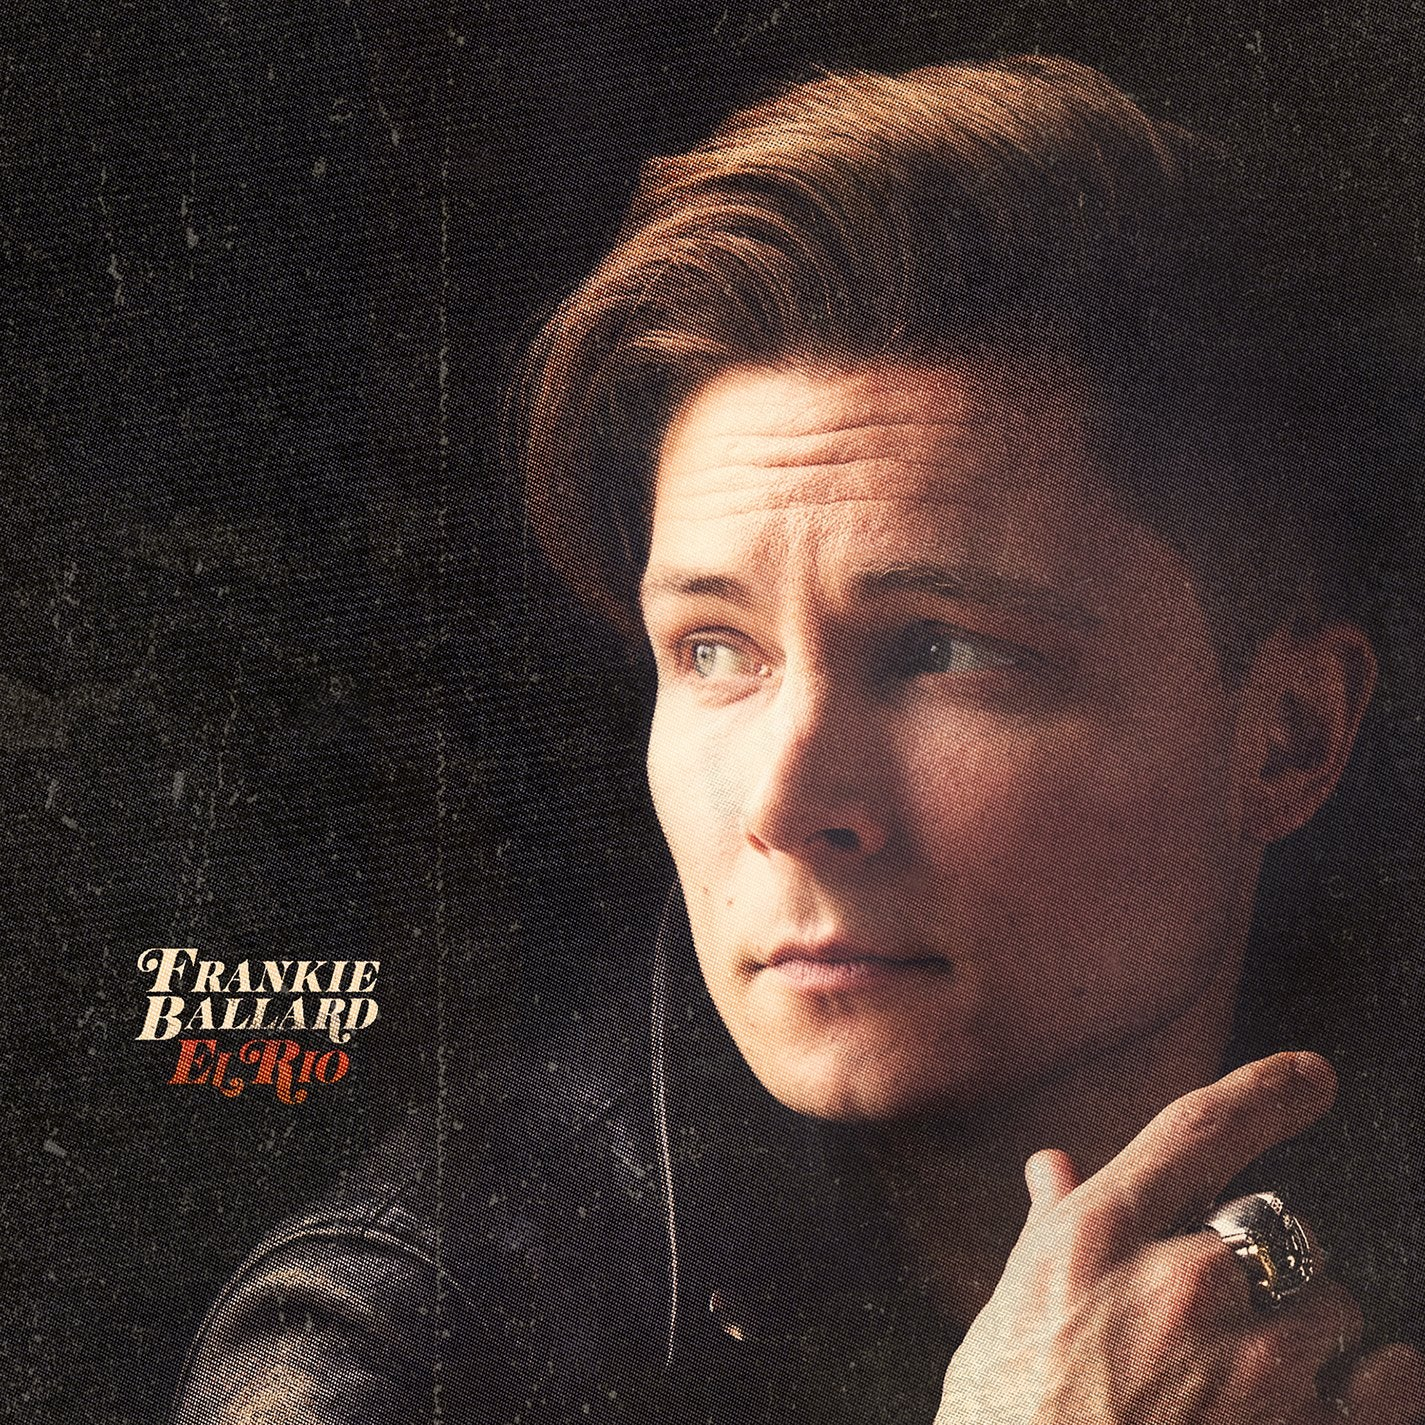 El Rio [Audio CD] Frankie Ballard